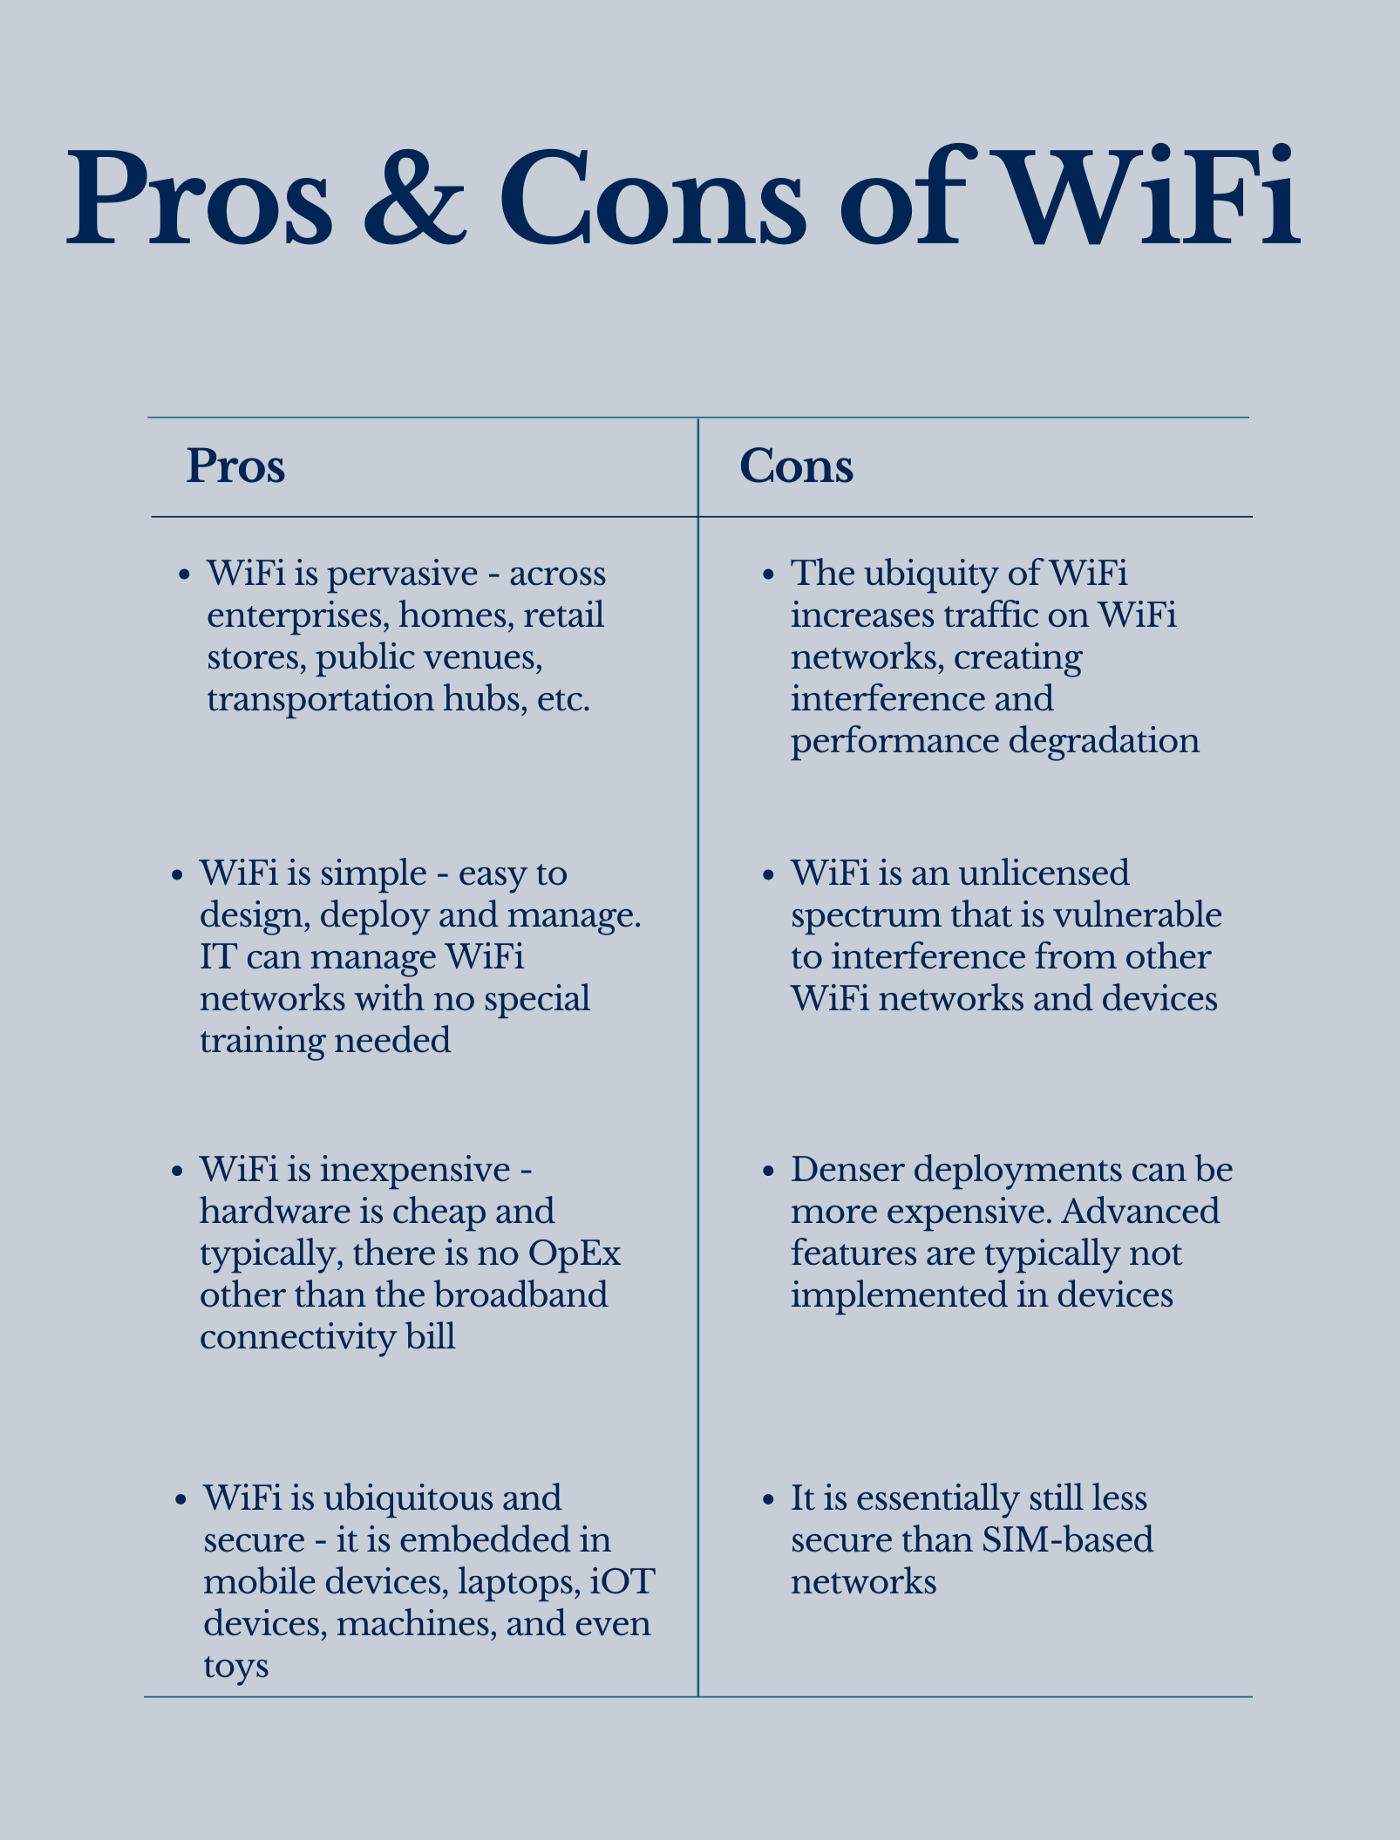 Pros and Cons of WiFi